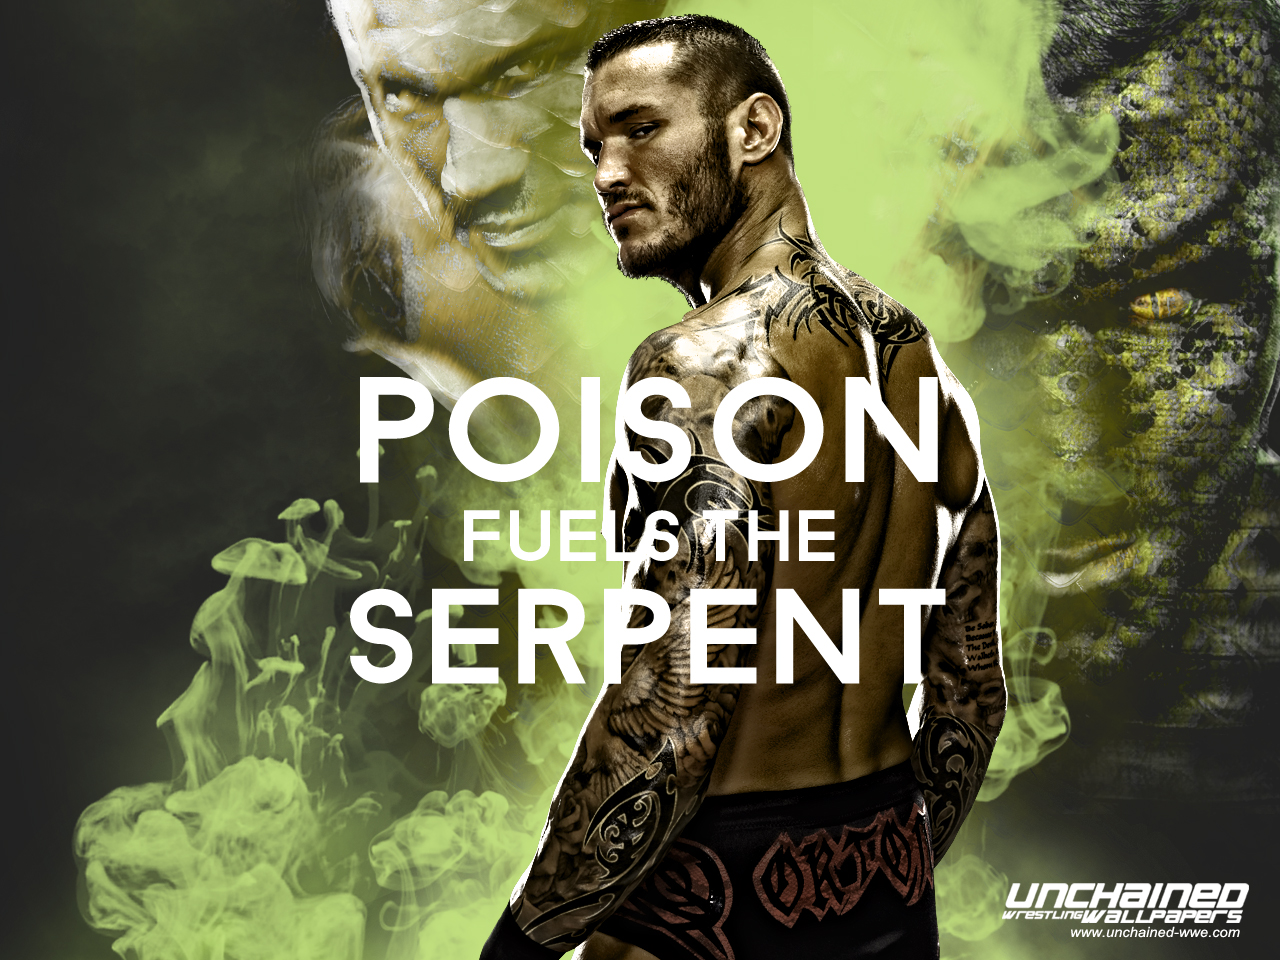 Randy Orton - Poison fuels the Serpent